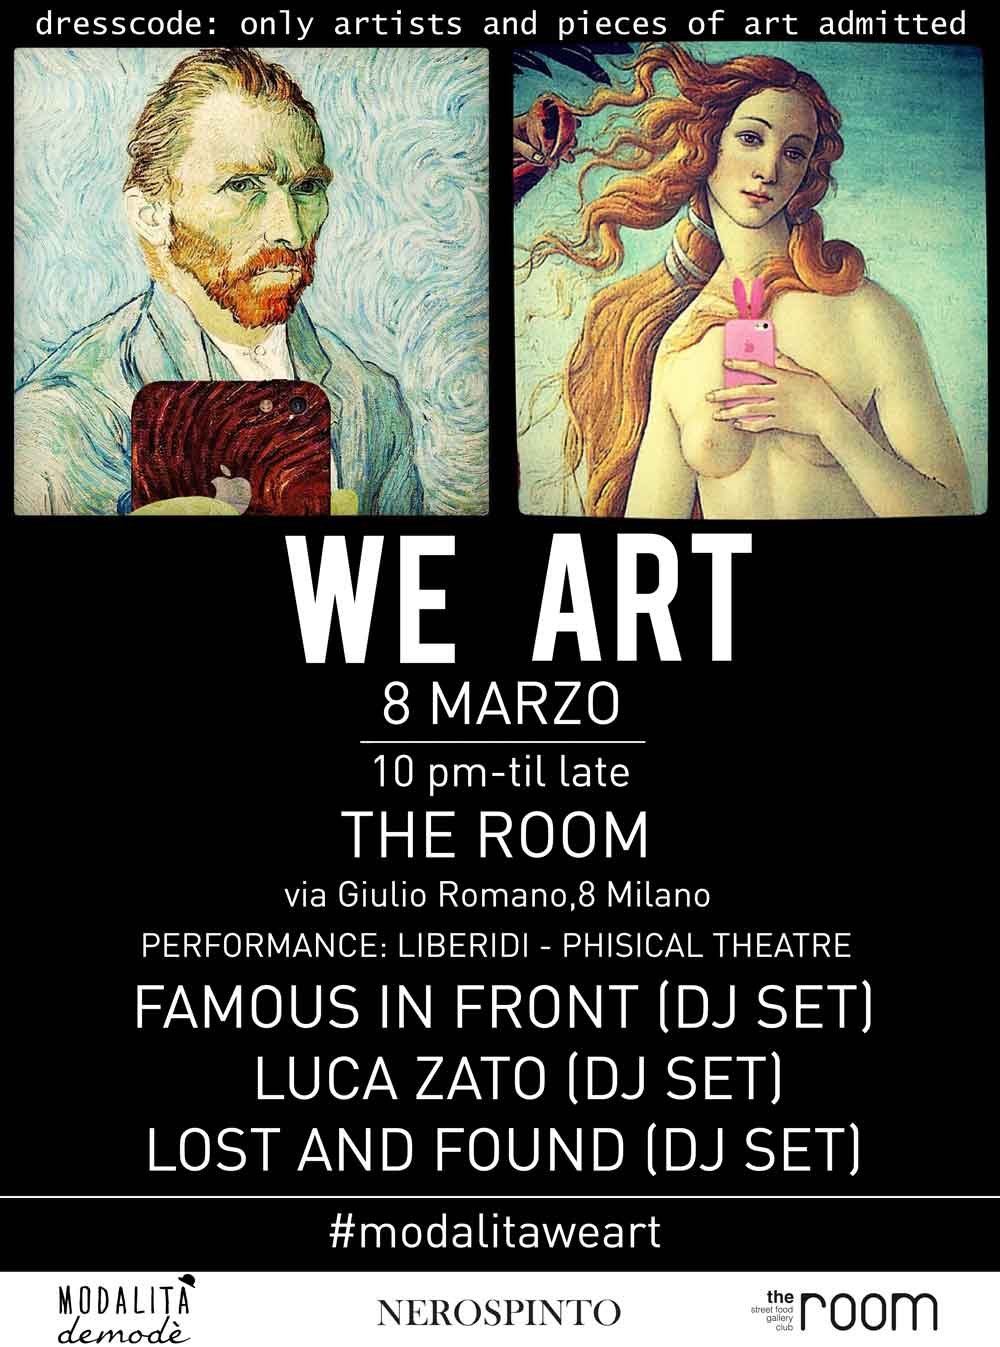 invito WEART 8 marzo Spazio Giulio Romano WE ART   Only artists and pieces of art admitted